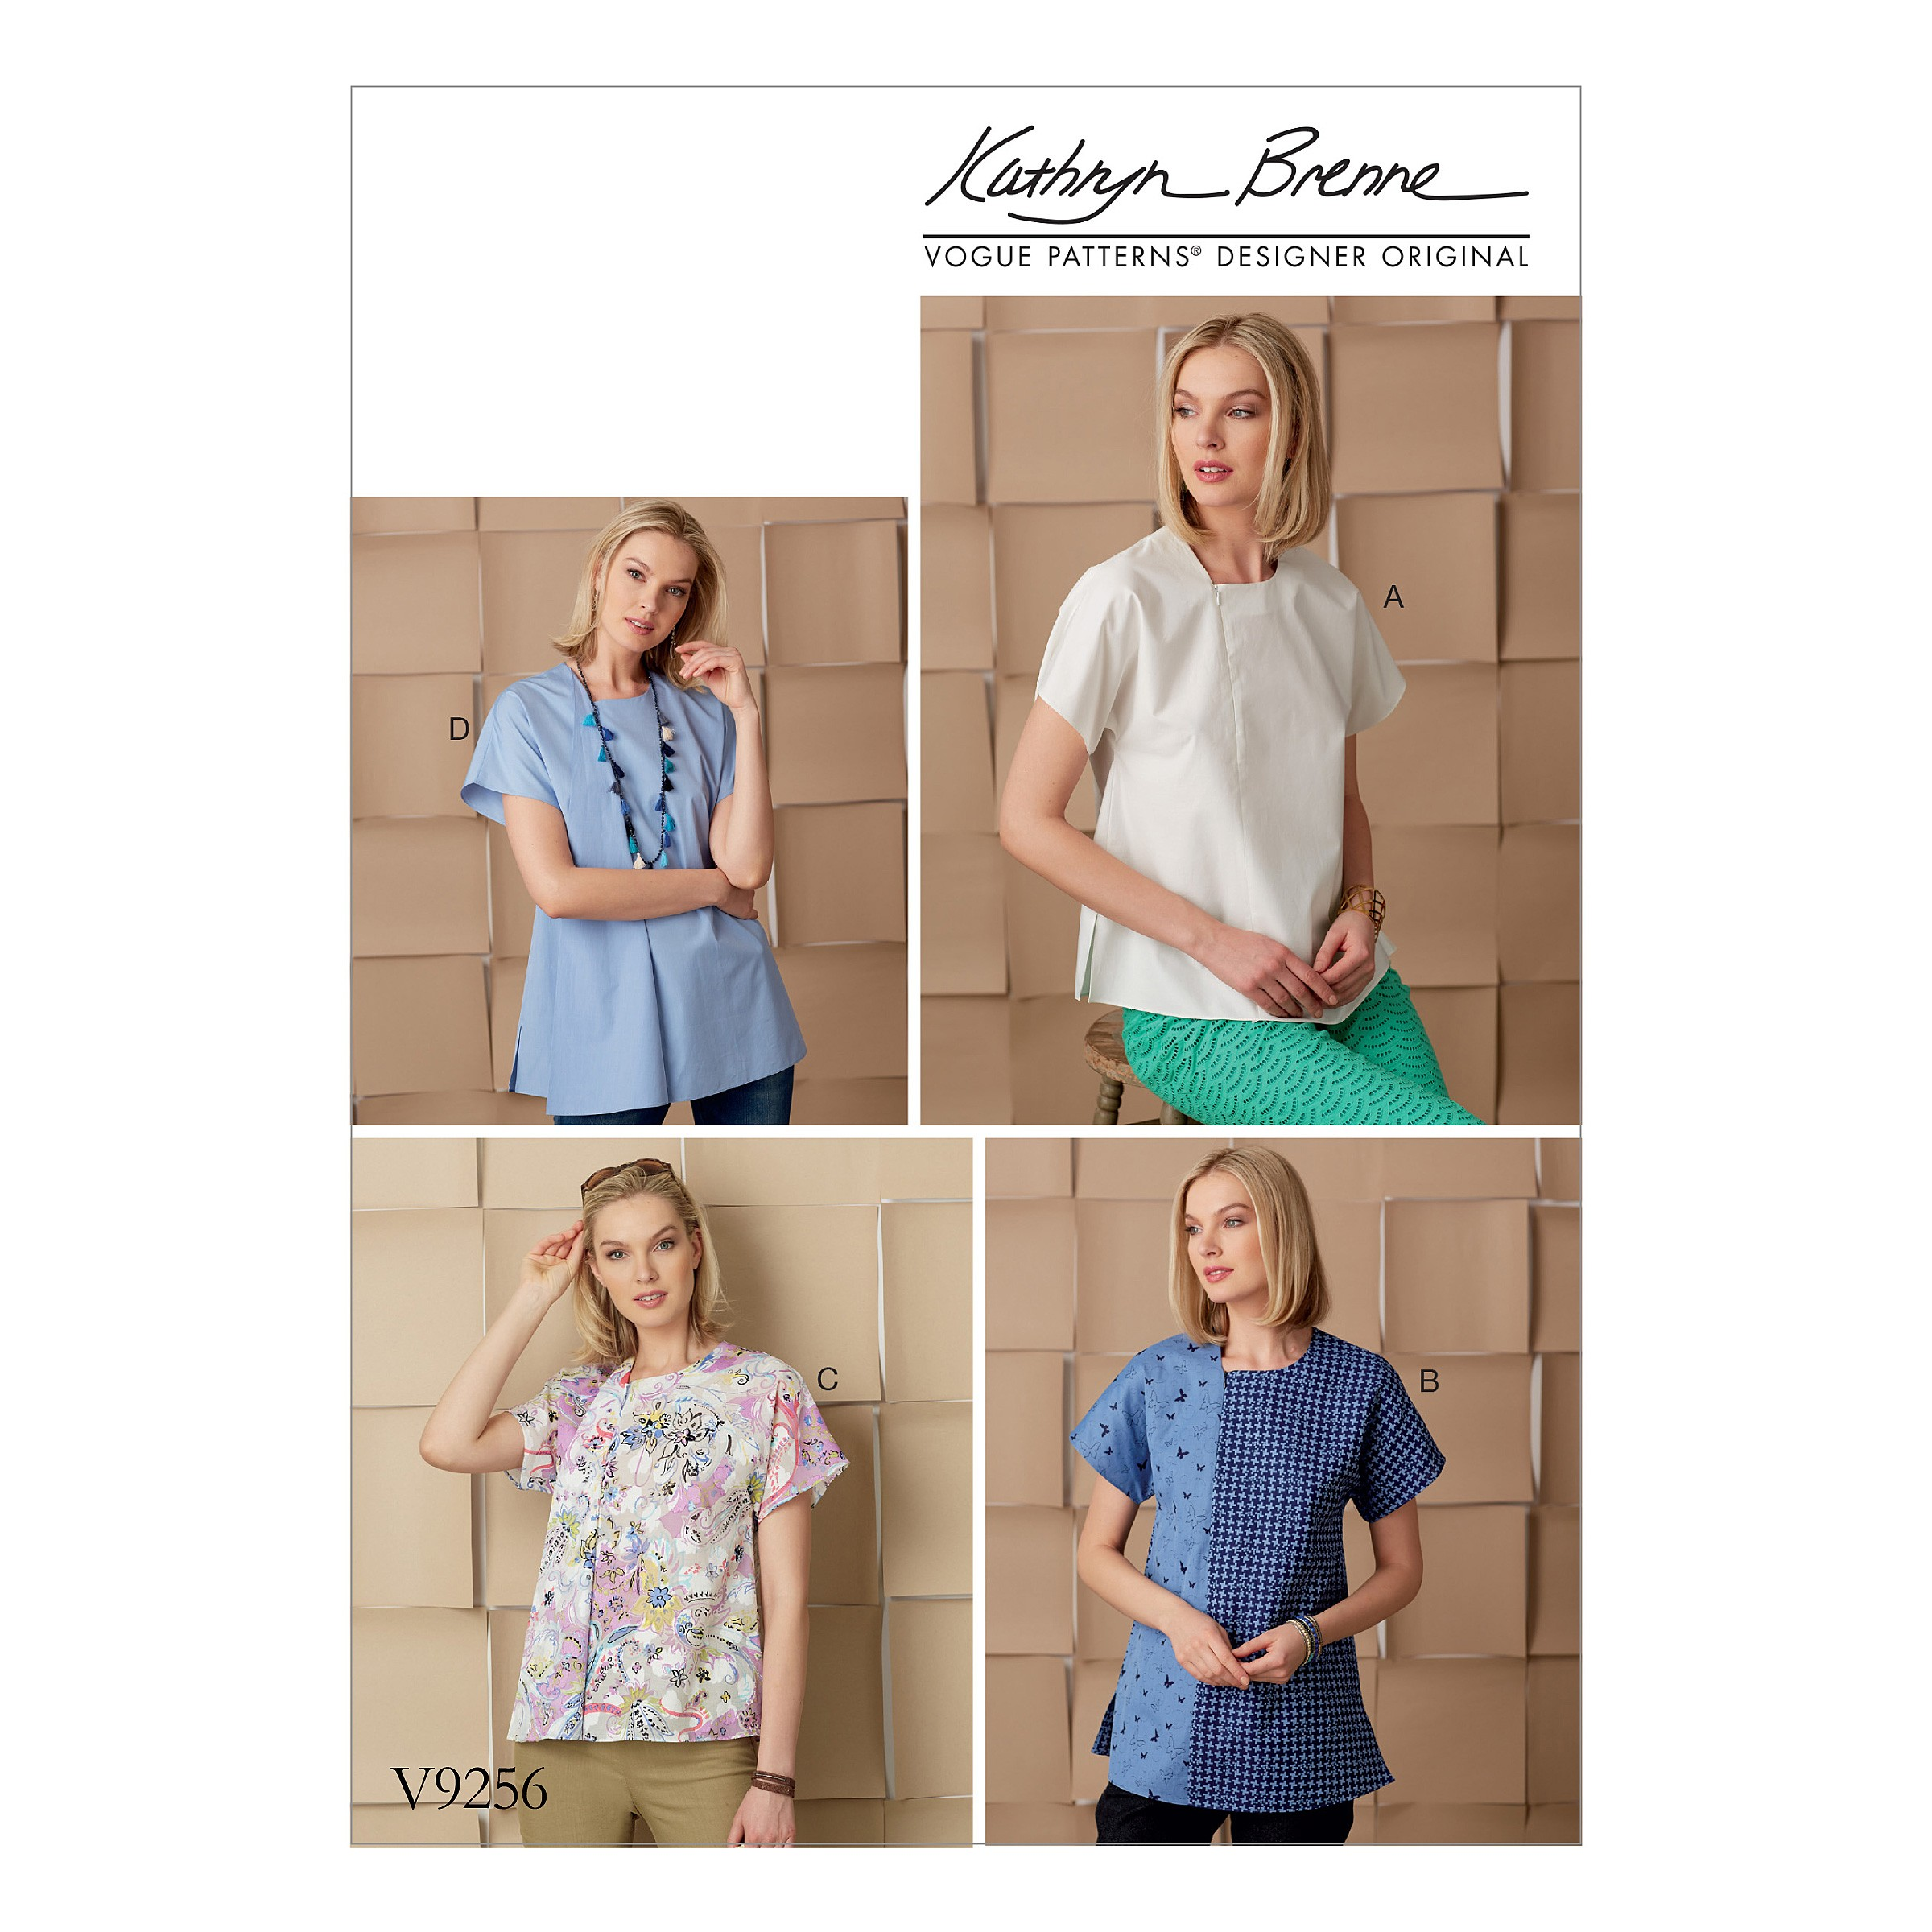 Vogue Sewing Pattern V9256 Women's Top With Invisible Zipper & Self Fabric Underlay